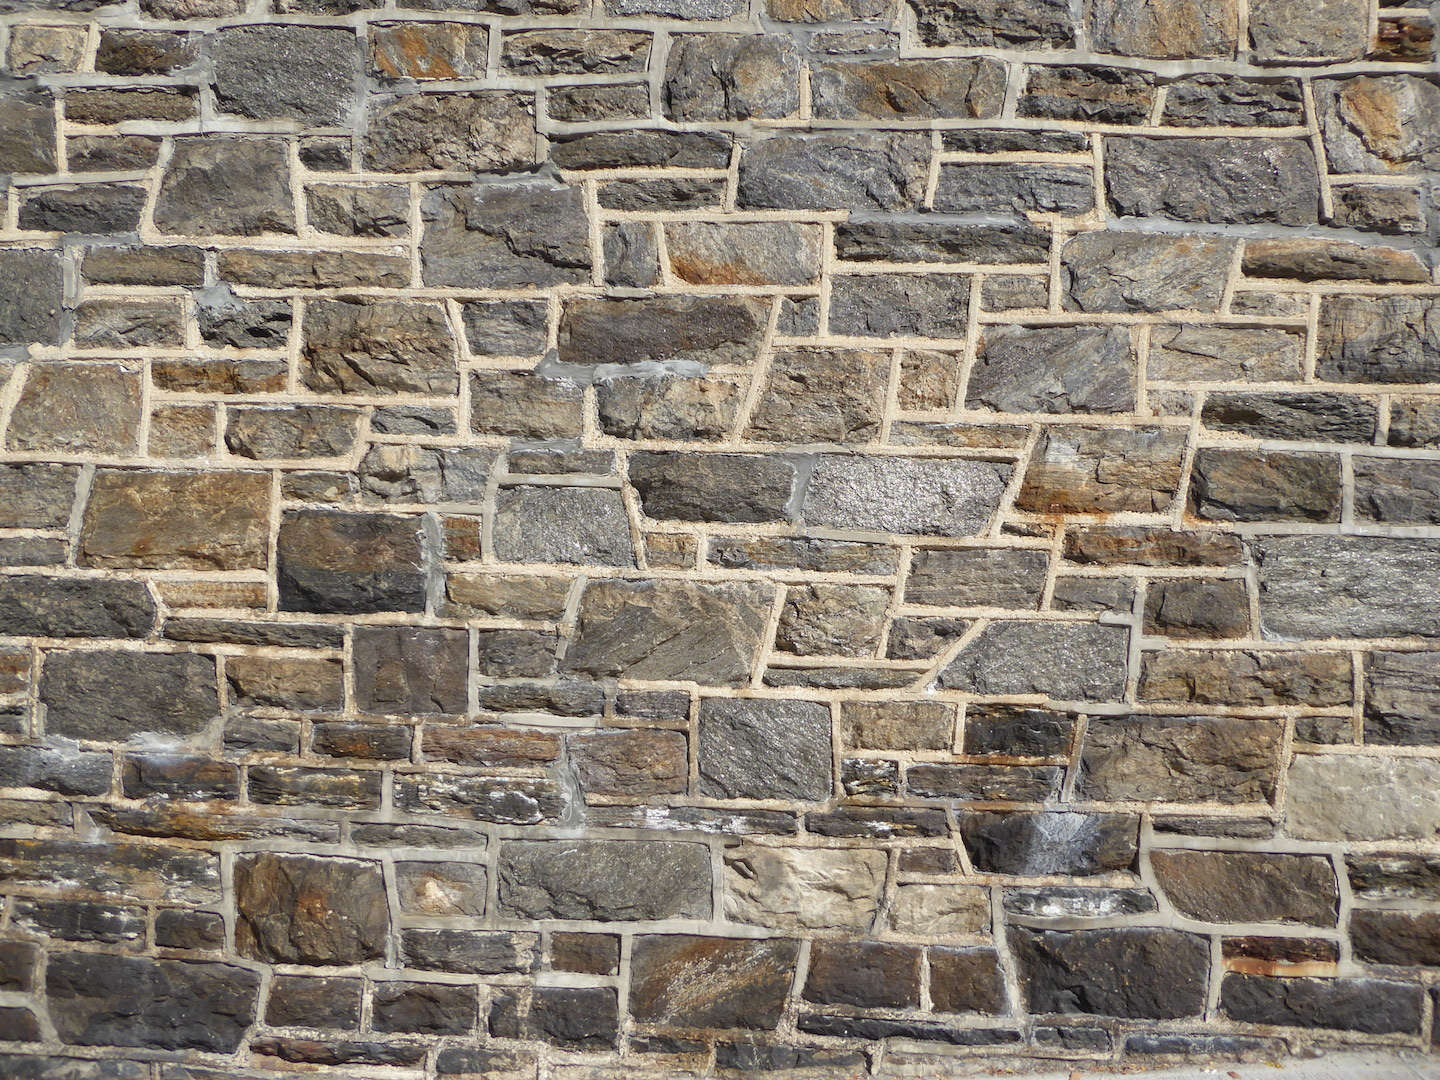 A closeup of an exterior wall of the school building.